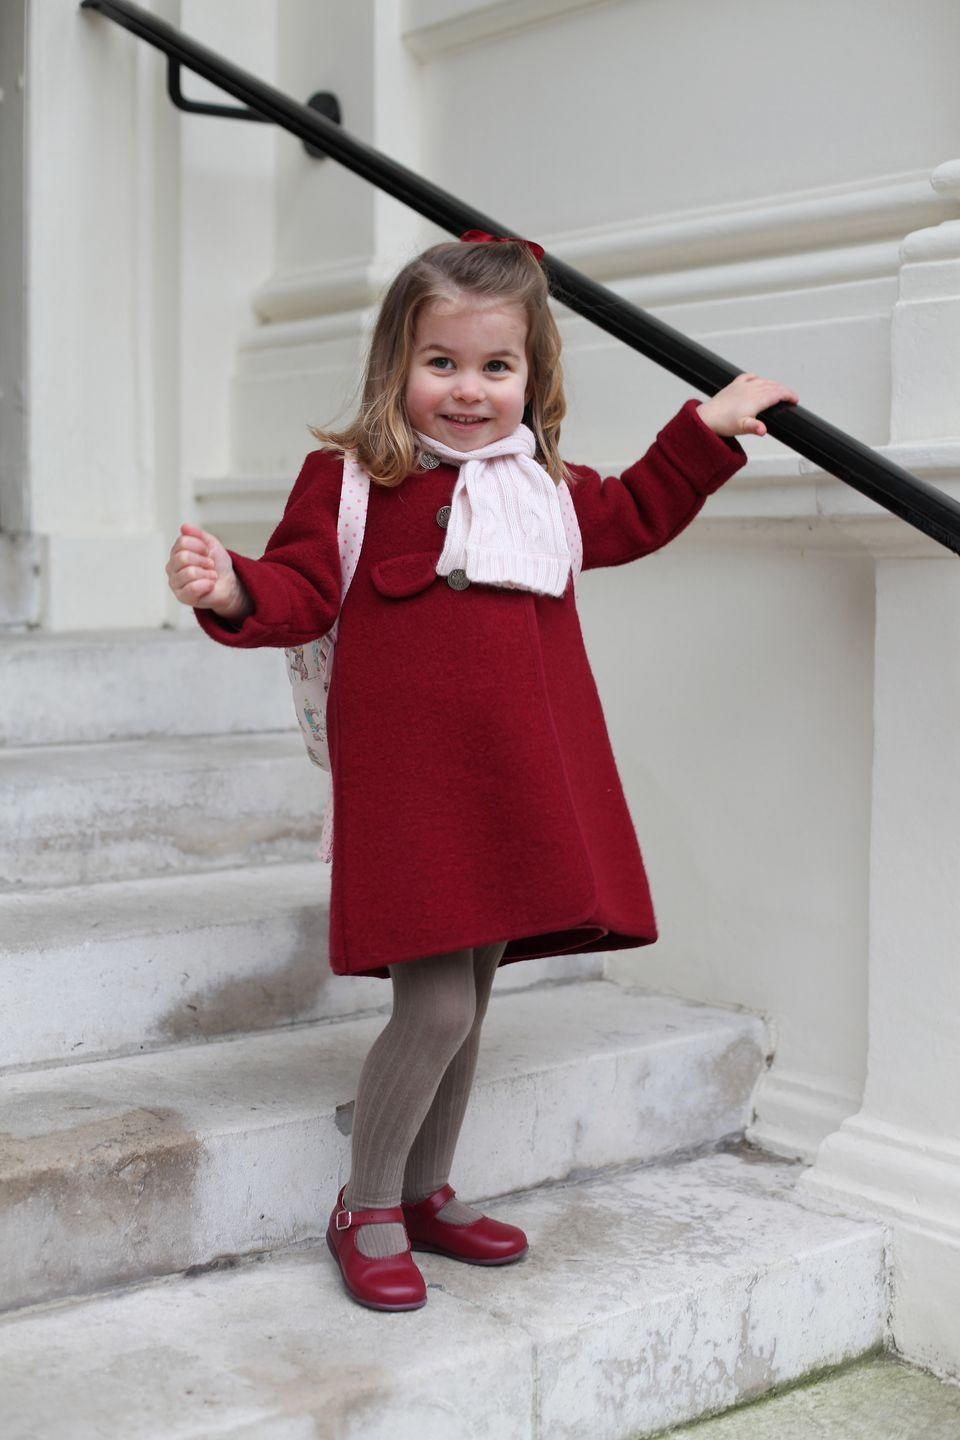 <p>The Palace releases photos of Princess Charlotte before she attends her first day of nursery at the Willcocks Nursery School.</p>